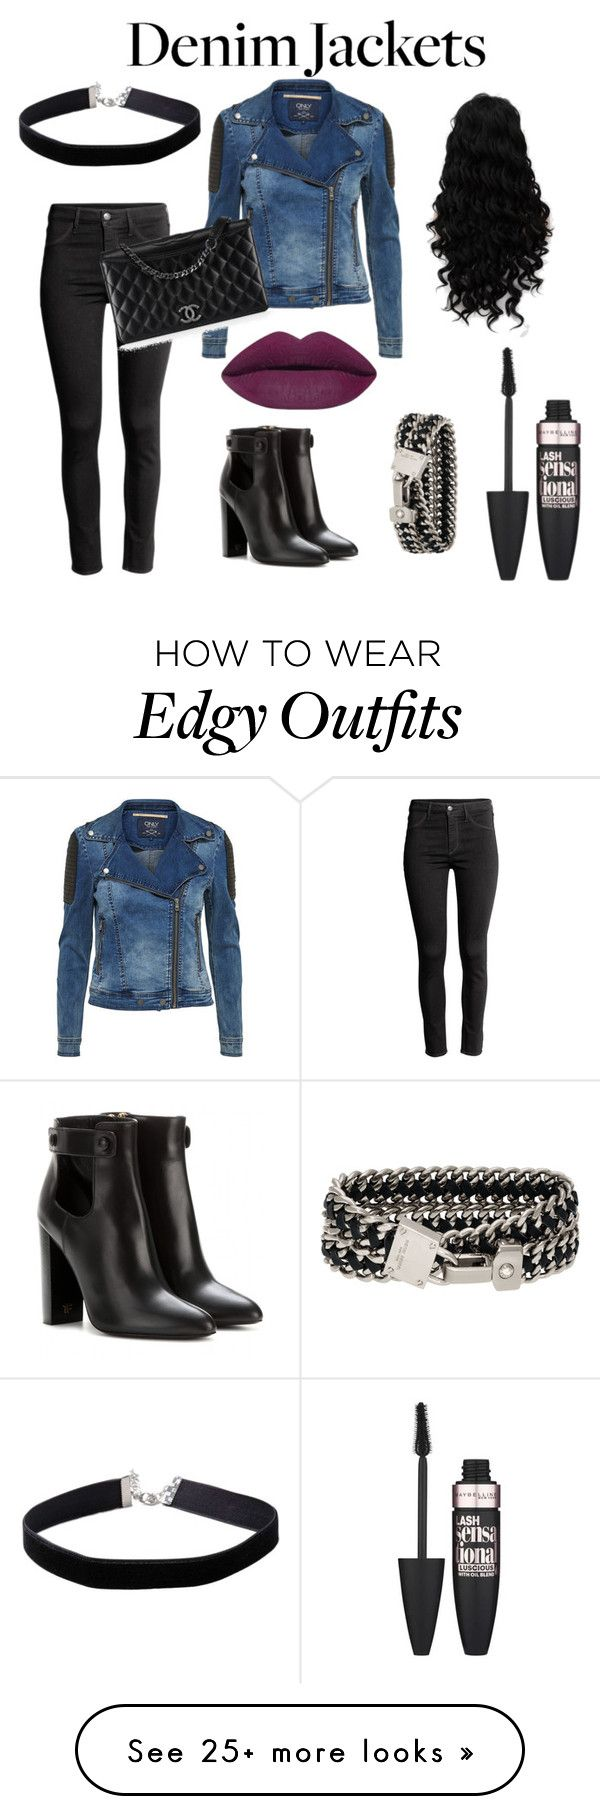 """Edgy Chic"" by judith-stephanie-hernandez on Polyvore featuring Tom Ford, H&M, Miss Selfridge, Henri Bendel, Maybelline, Chanel, denimjackets and Ward..."